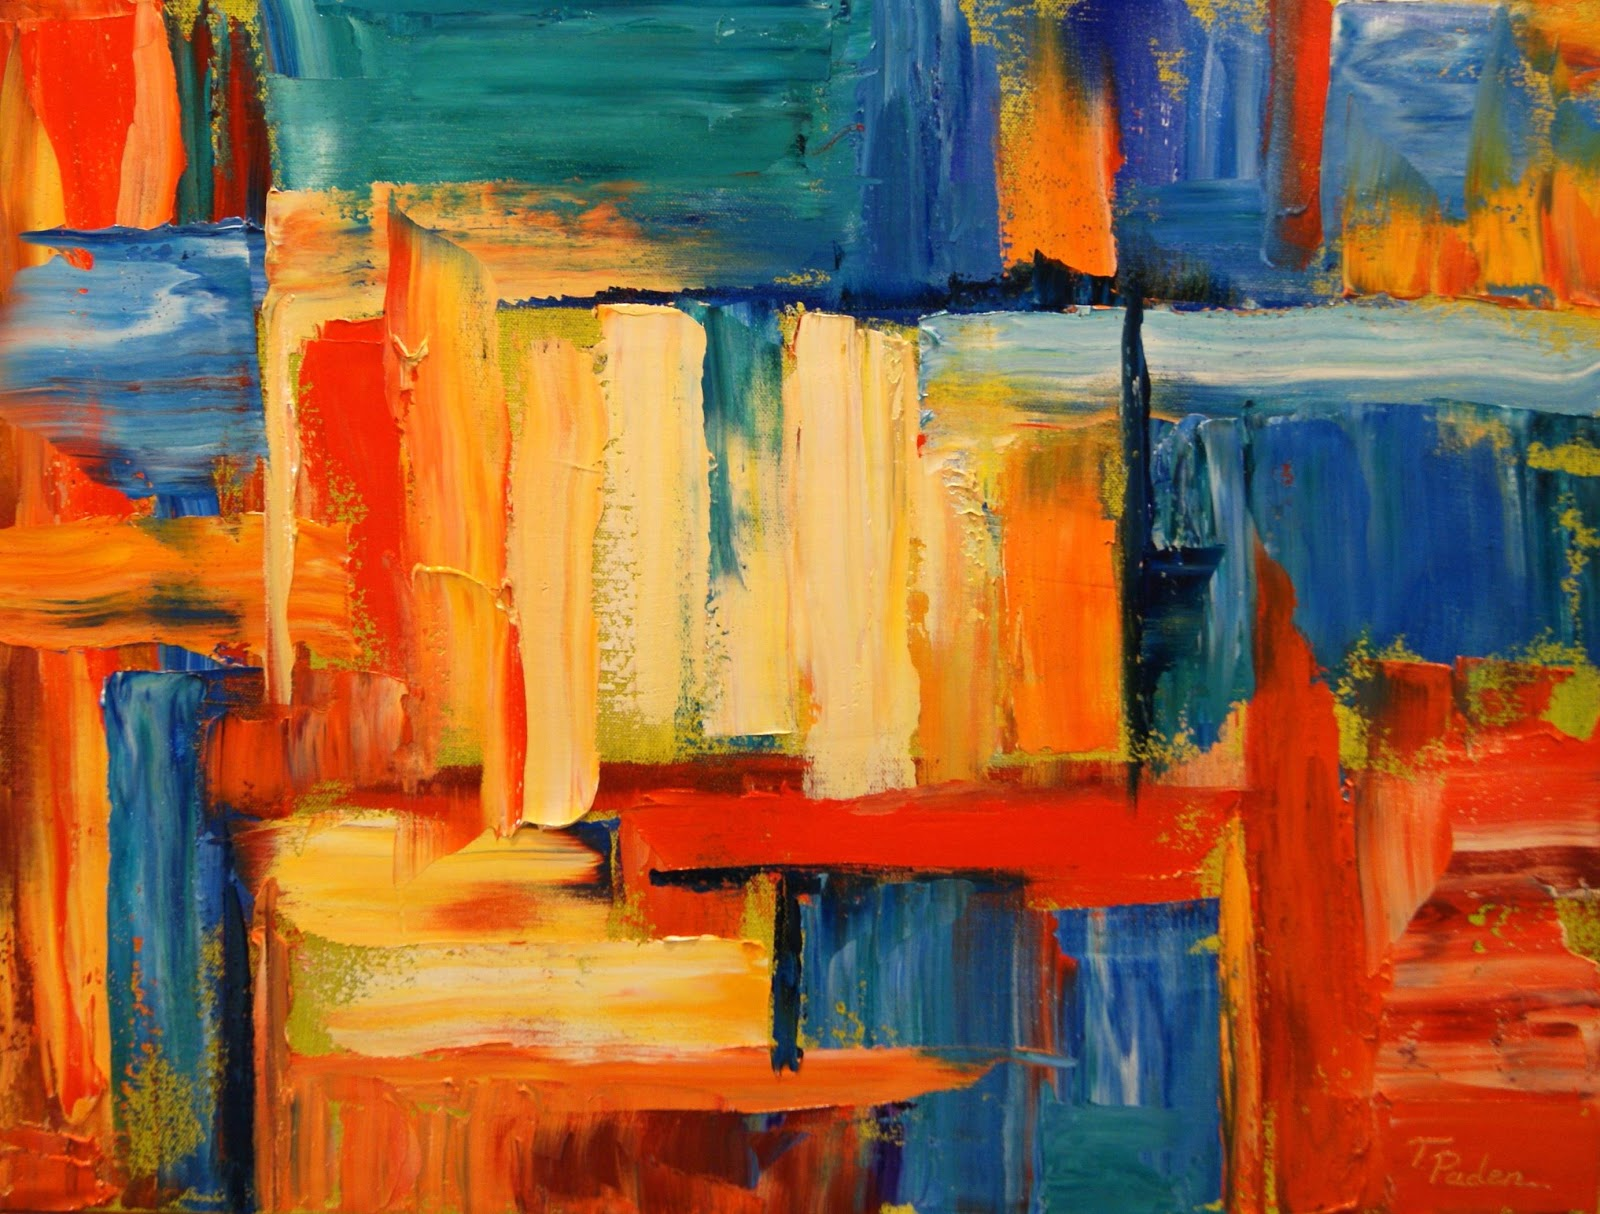 Daily Painters Abstract Gallery: Colorful Abstract Oil ...